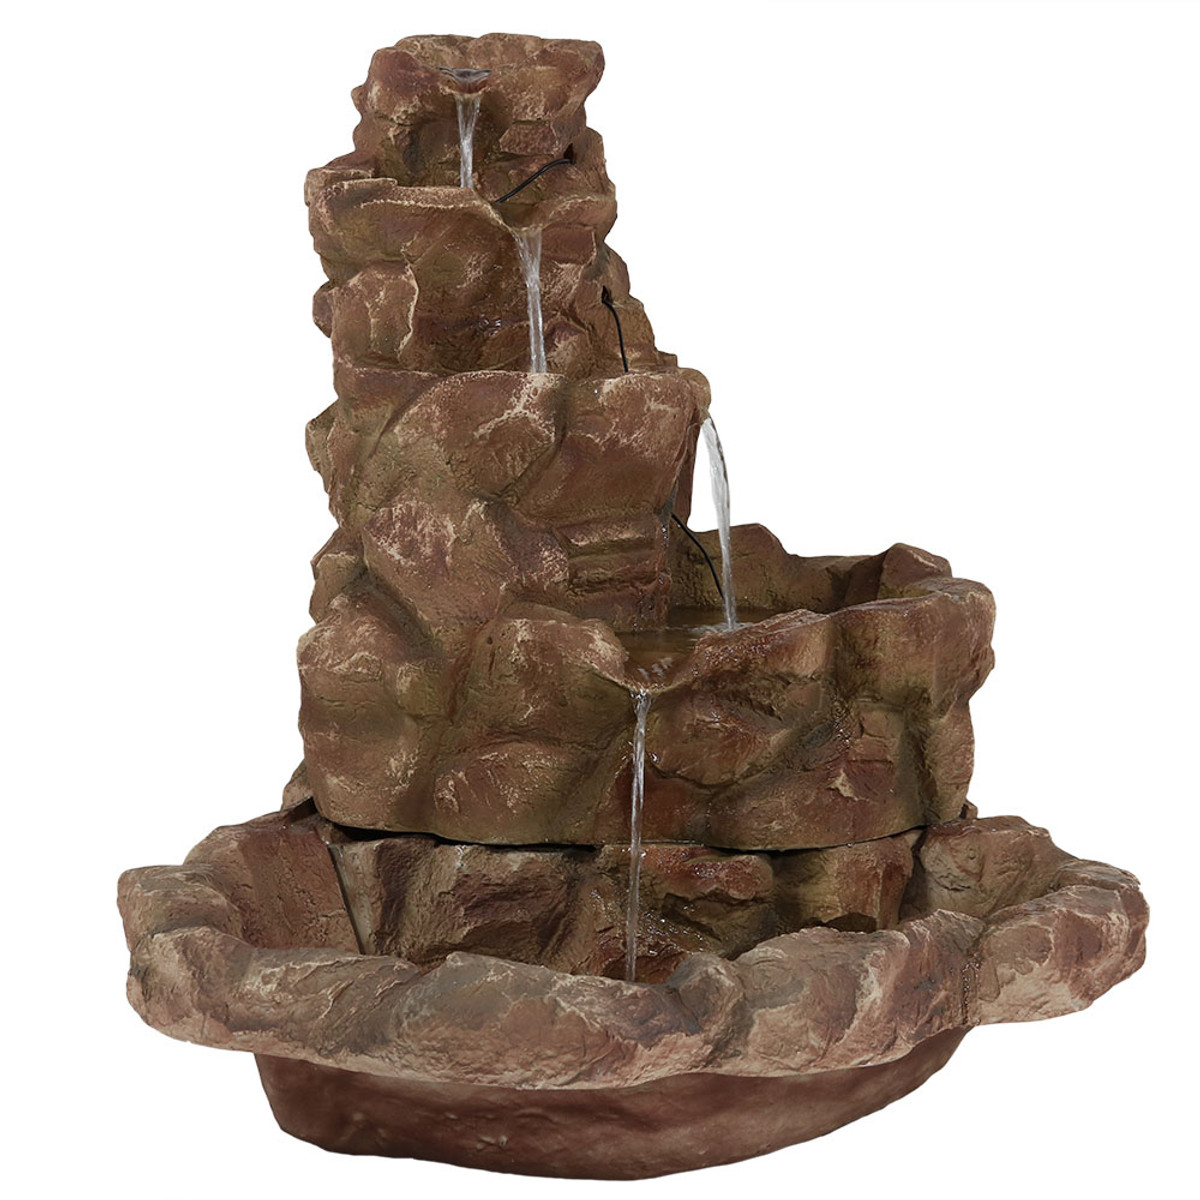 Sunnydaze Lighted Stone Springs Outdoor Water Fountain